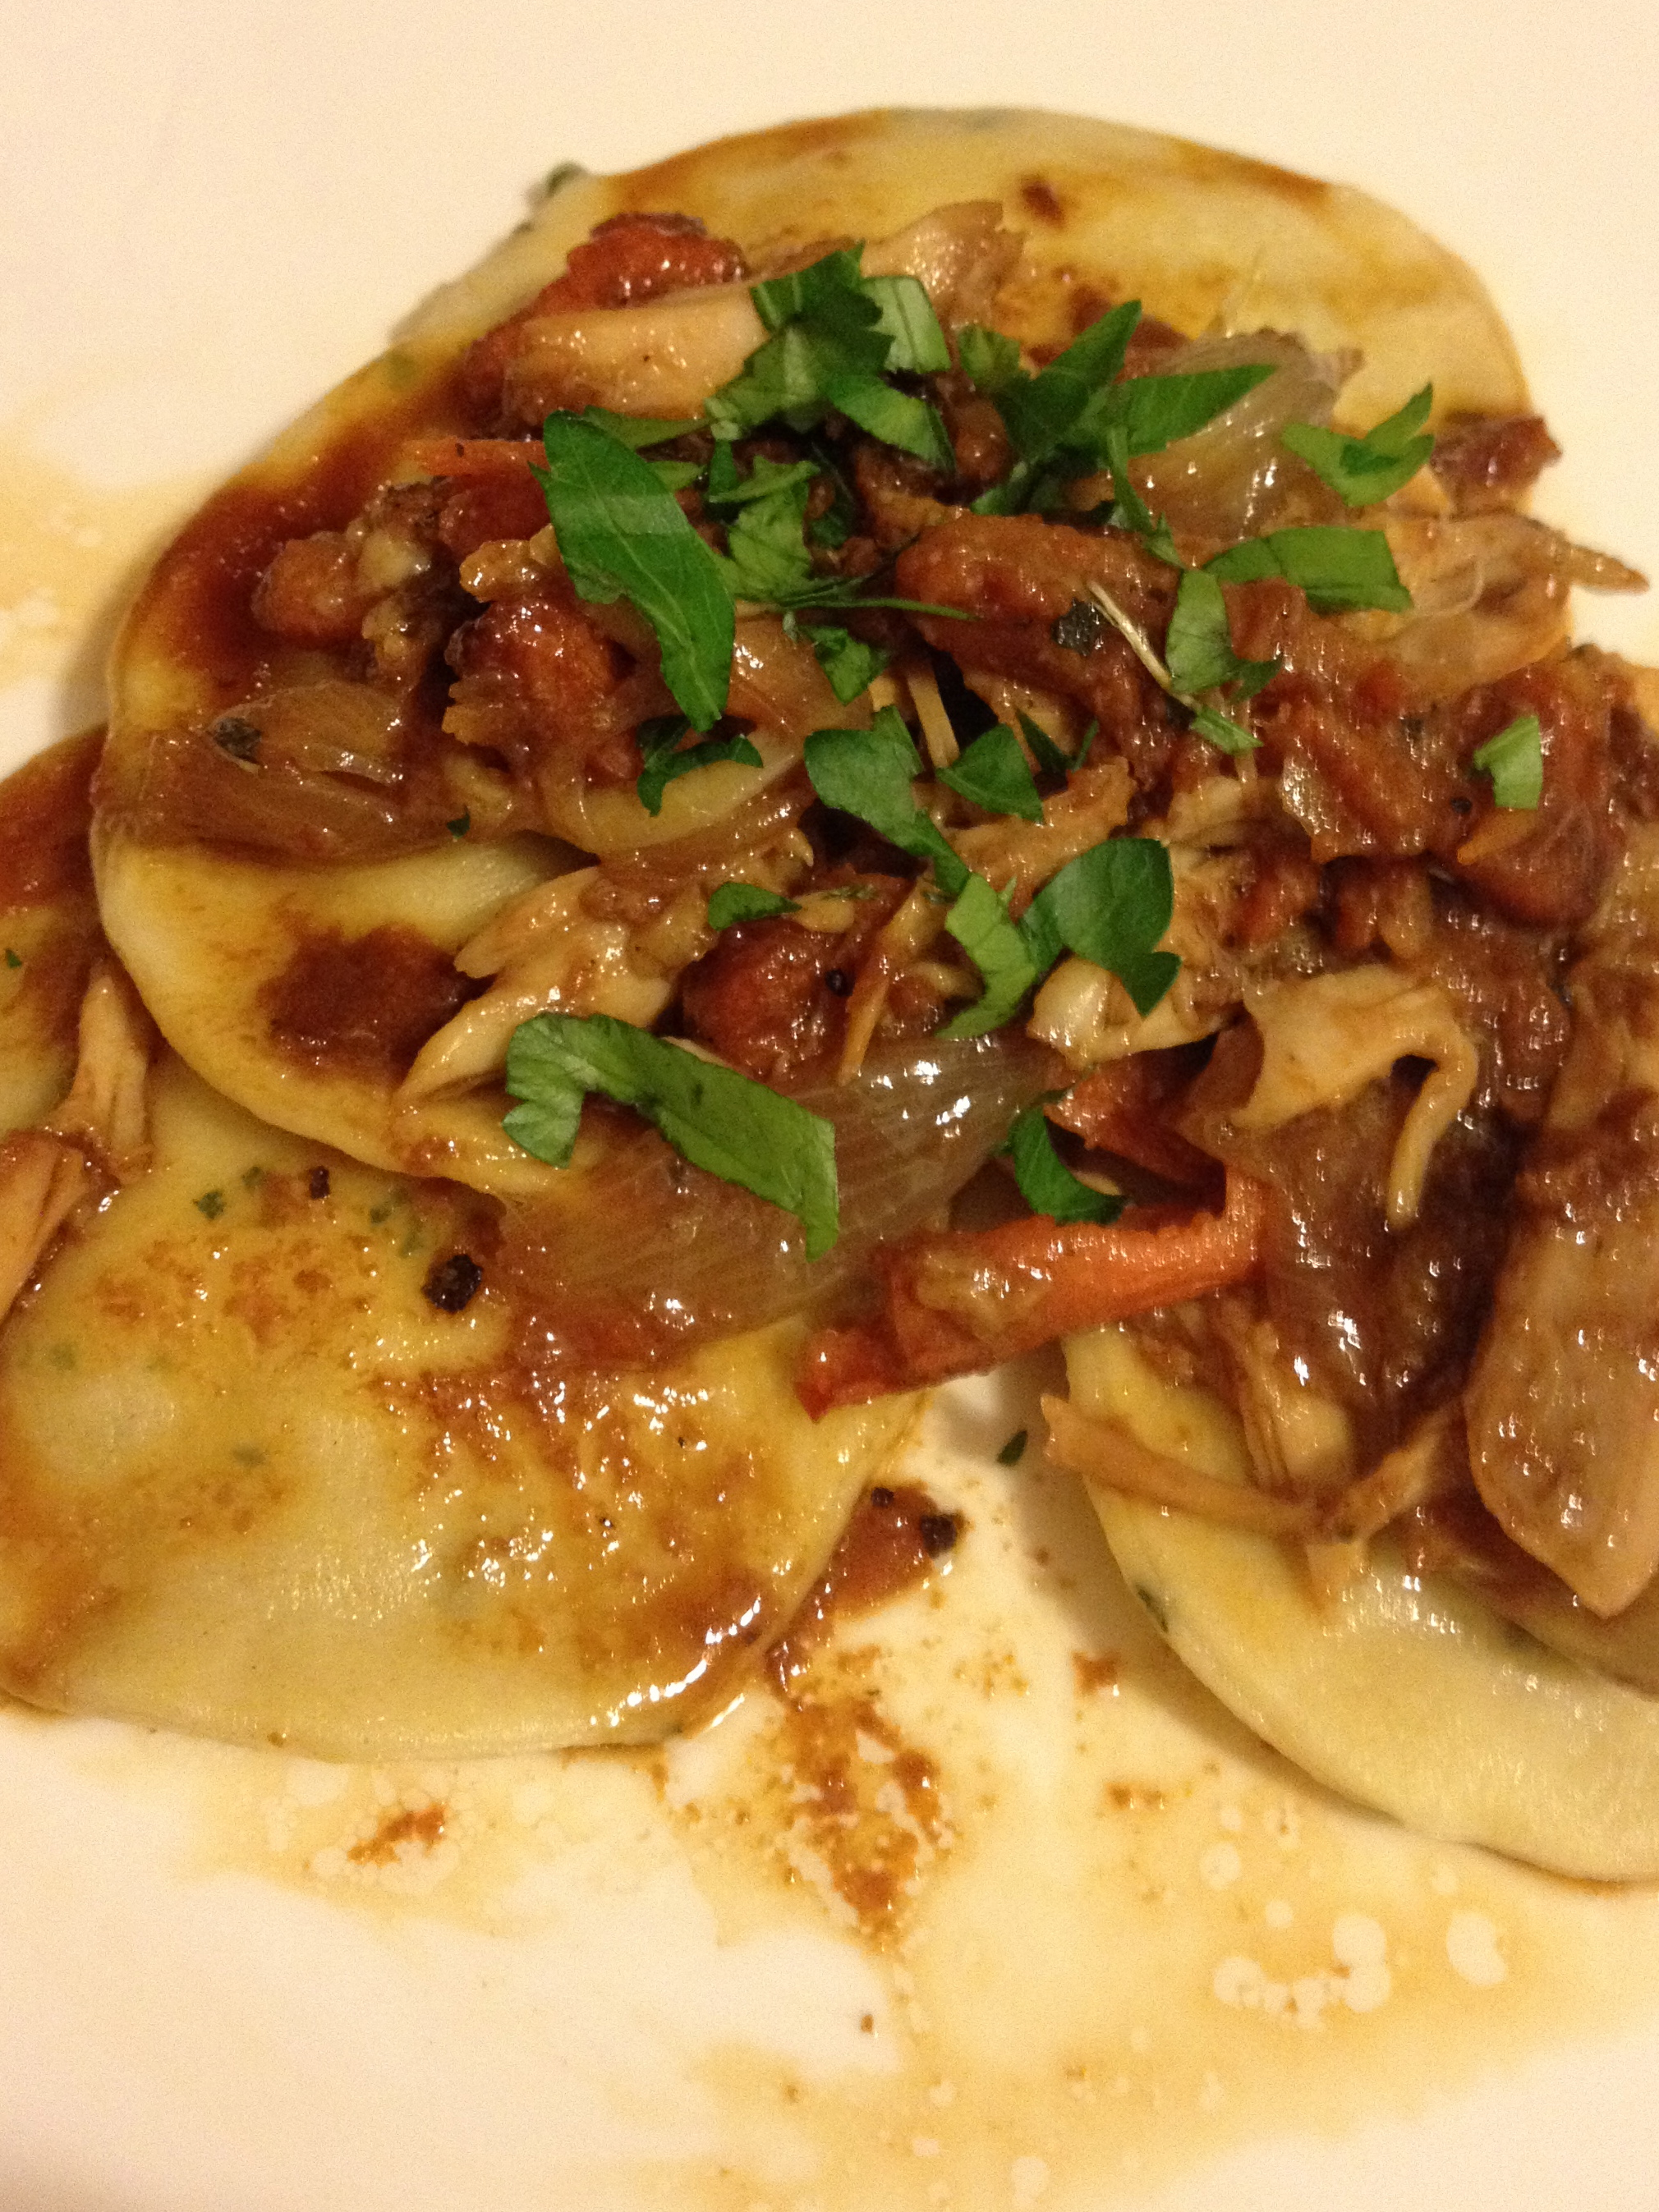 Homemade Sage Ravioli With Ricotta,Walnut and Shredded  Herbed Duck Sauce